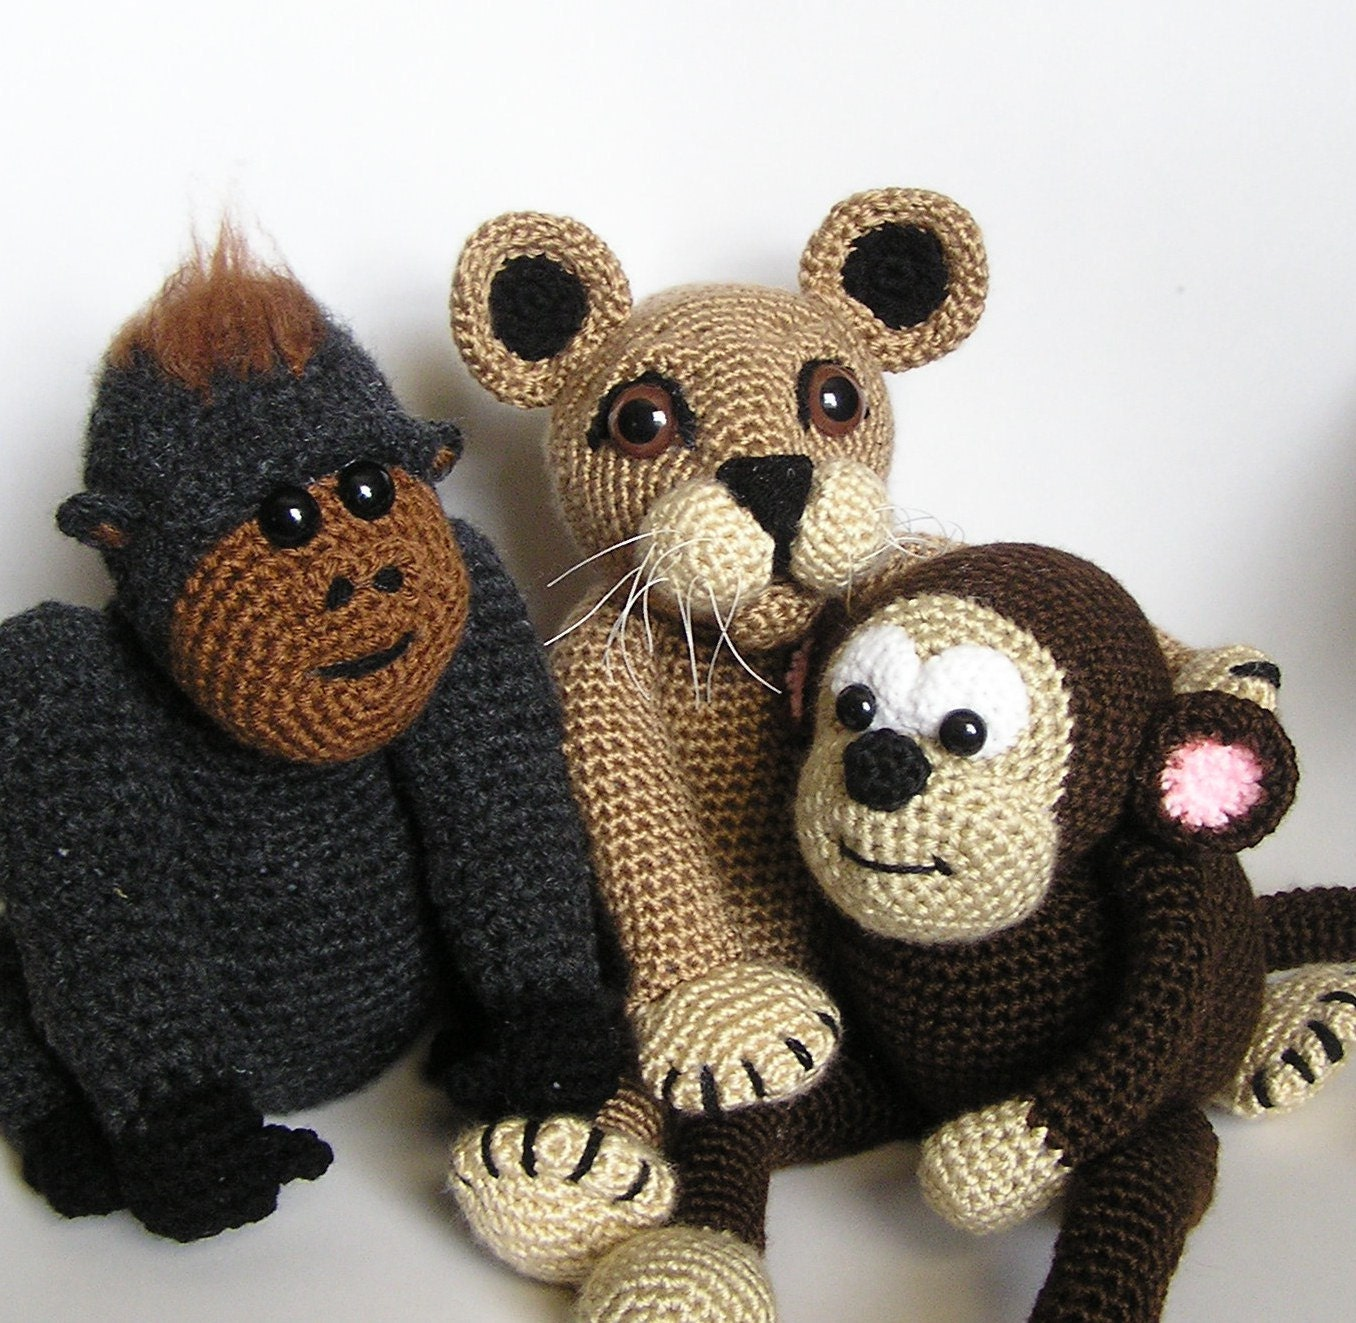 Crochet Patterns Jungle Animals : PDF crochet pattern JUNGLE BUDDIES by bvoe668 on Etsy